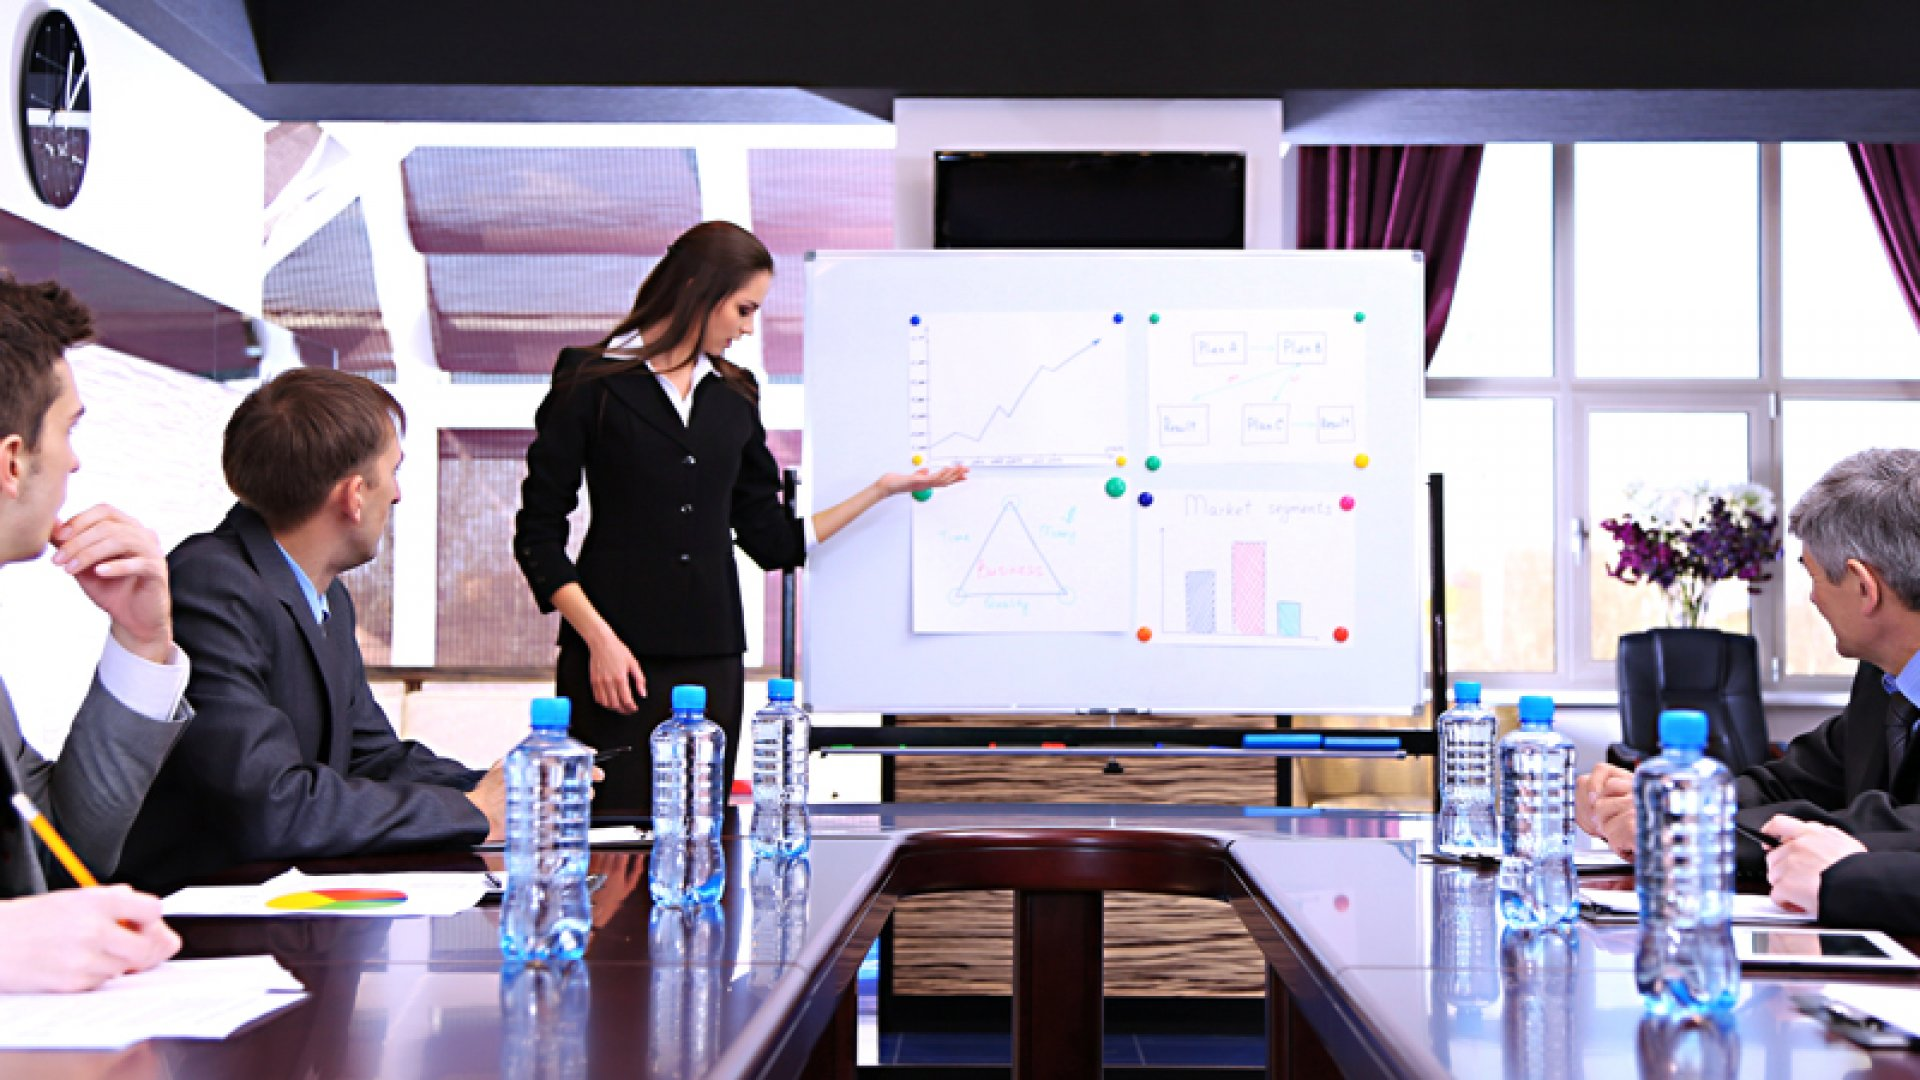 5 Ways to Get More From Your Meetings